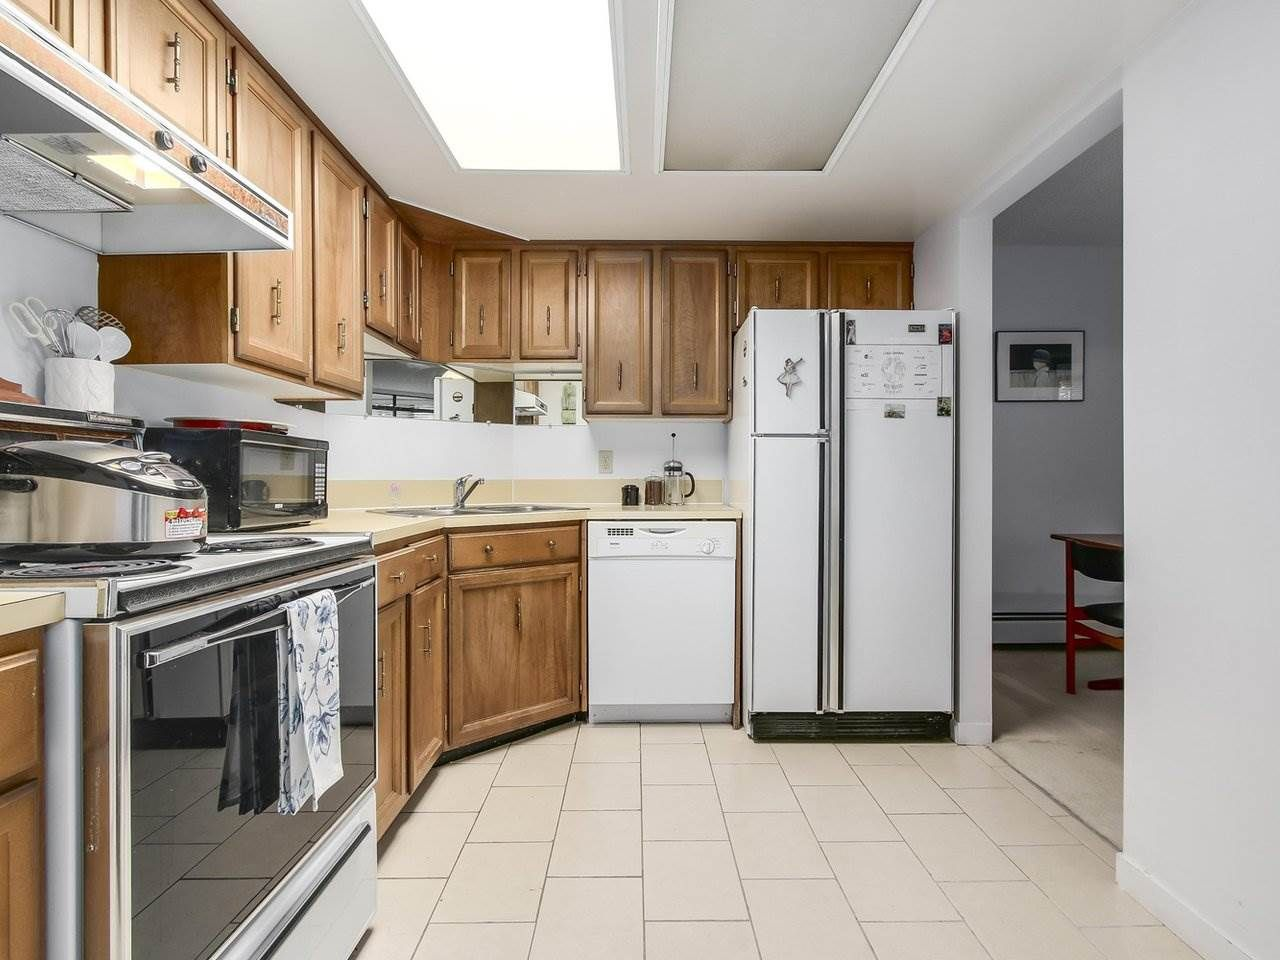 """Photo 7: Photos: 304 1480 FOSTER Street: White Rock Condo for sale in """"White Rock Square 1"""" (South Surrey White Rock)  : MLS®# R2231627"""